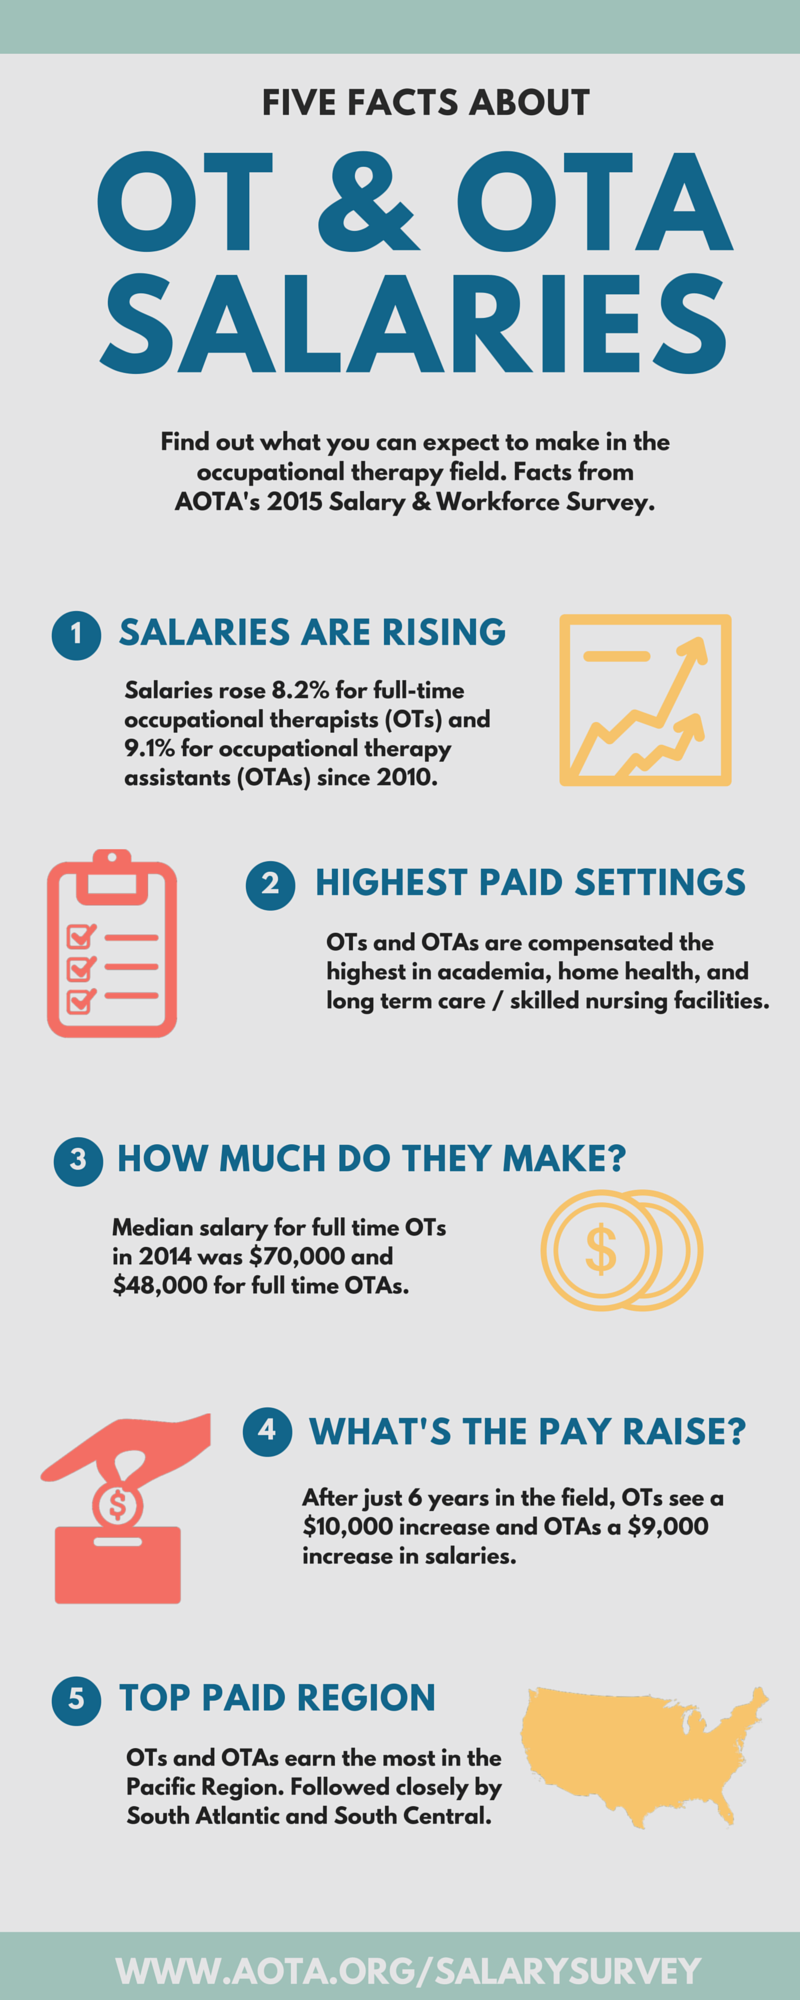 Amazing 1) Salaries Are Rising